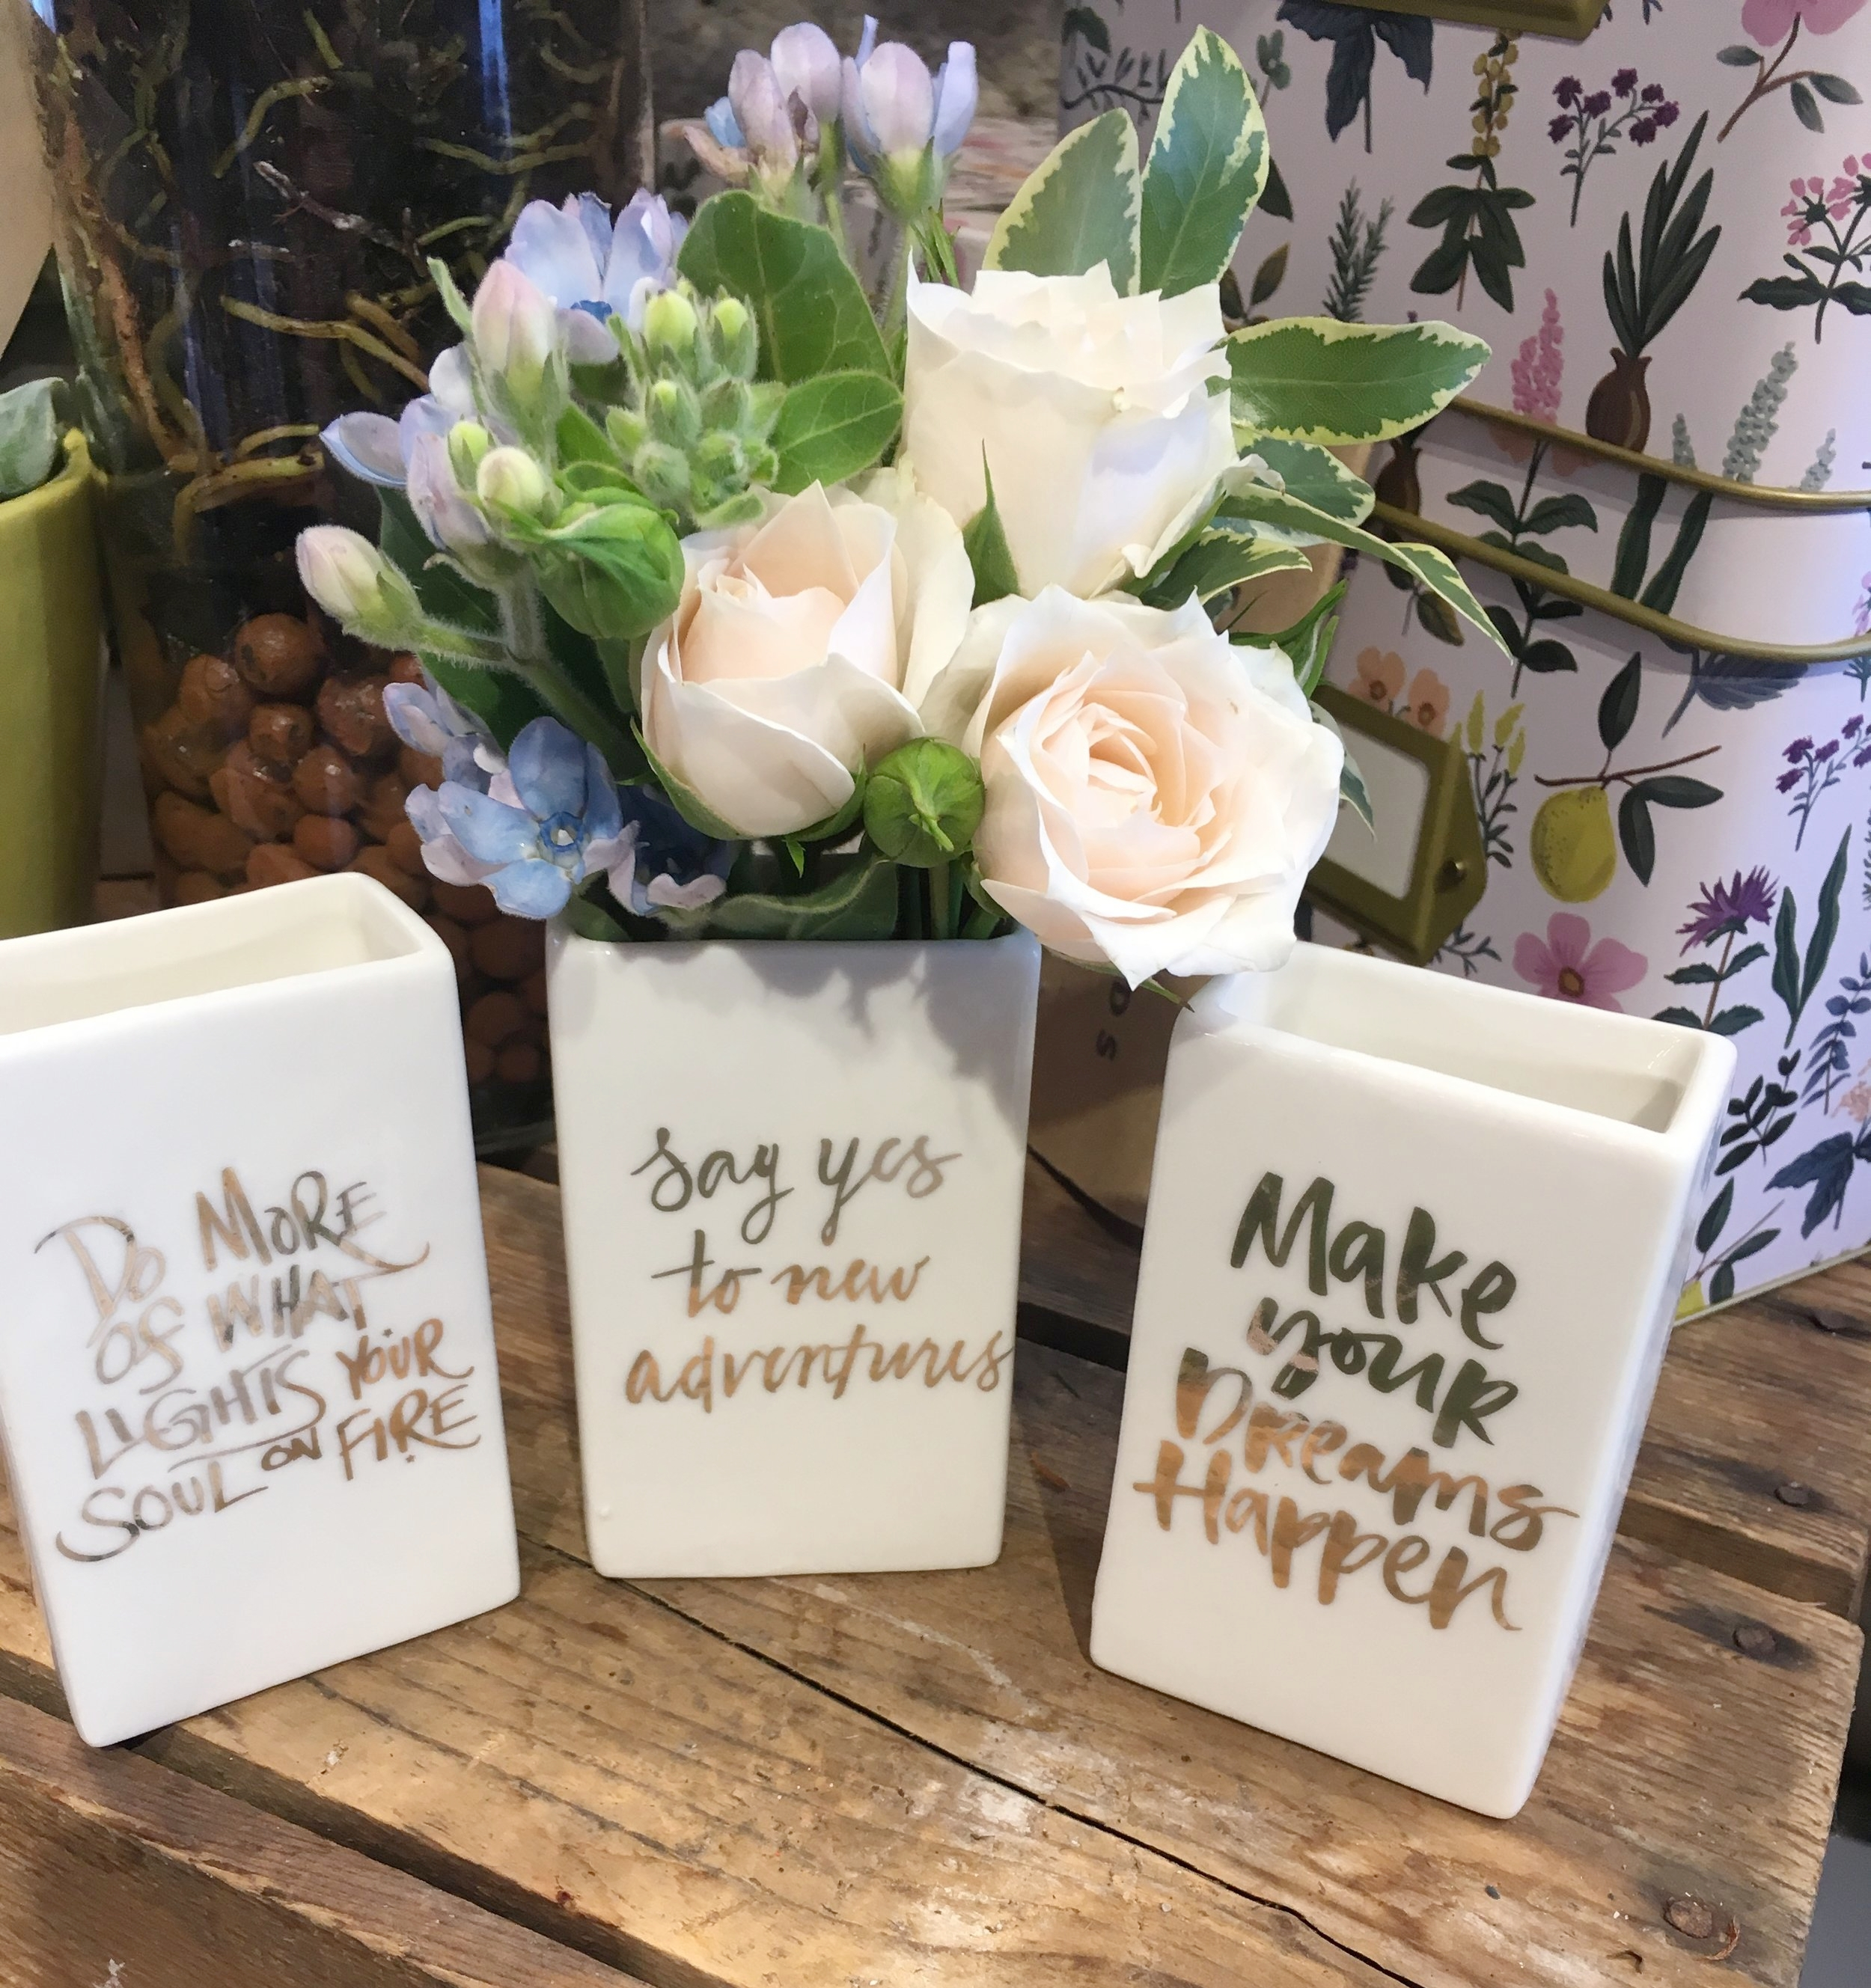 Pretty Posies  - Inspirational bud vases $14 each, $22 with flowers. These look great on their own and are the perfect size for one or two blooms!